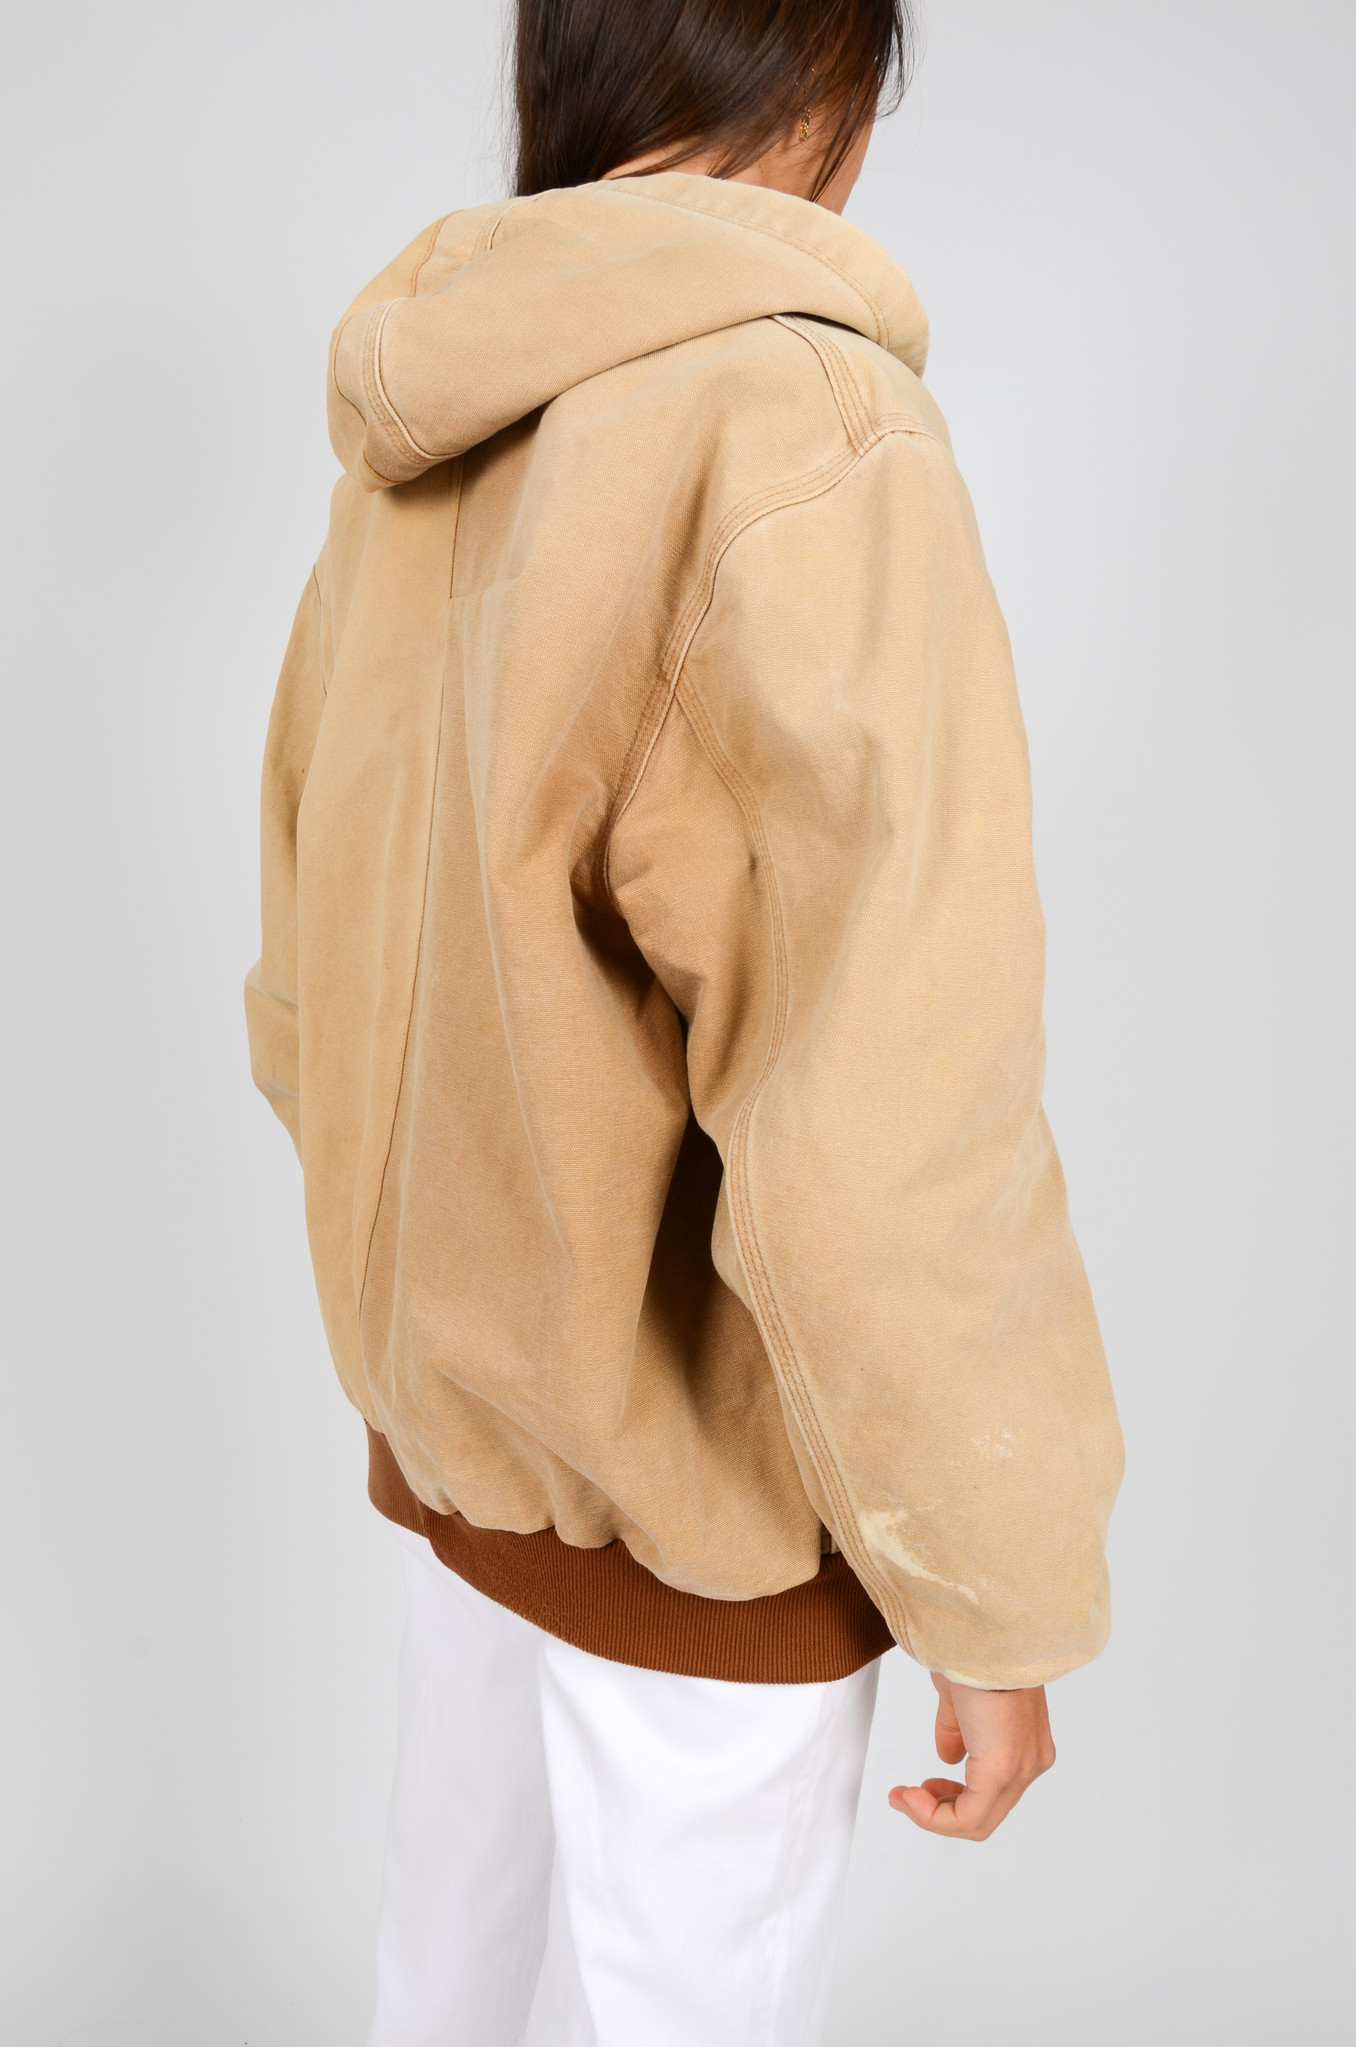 CARHARTT REVISITED JACKET-4